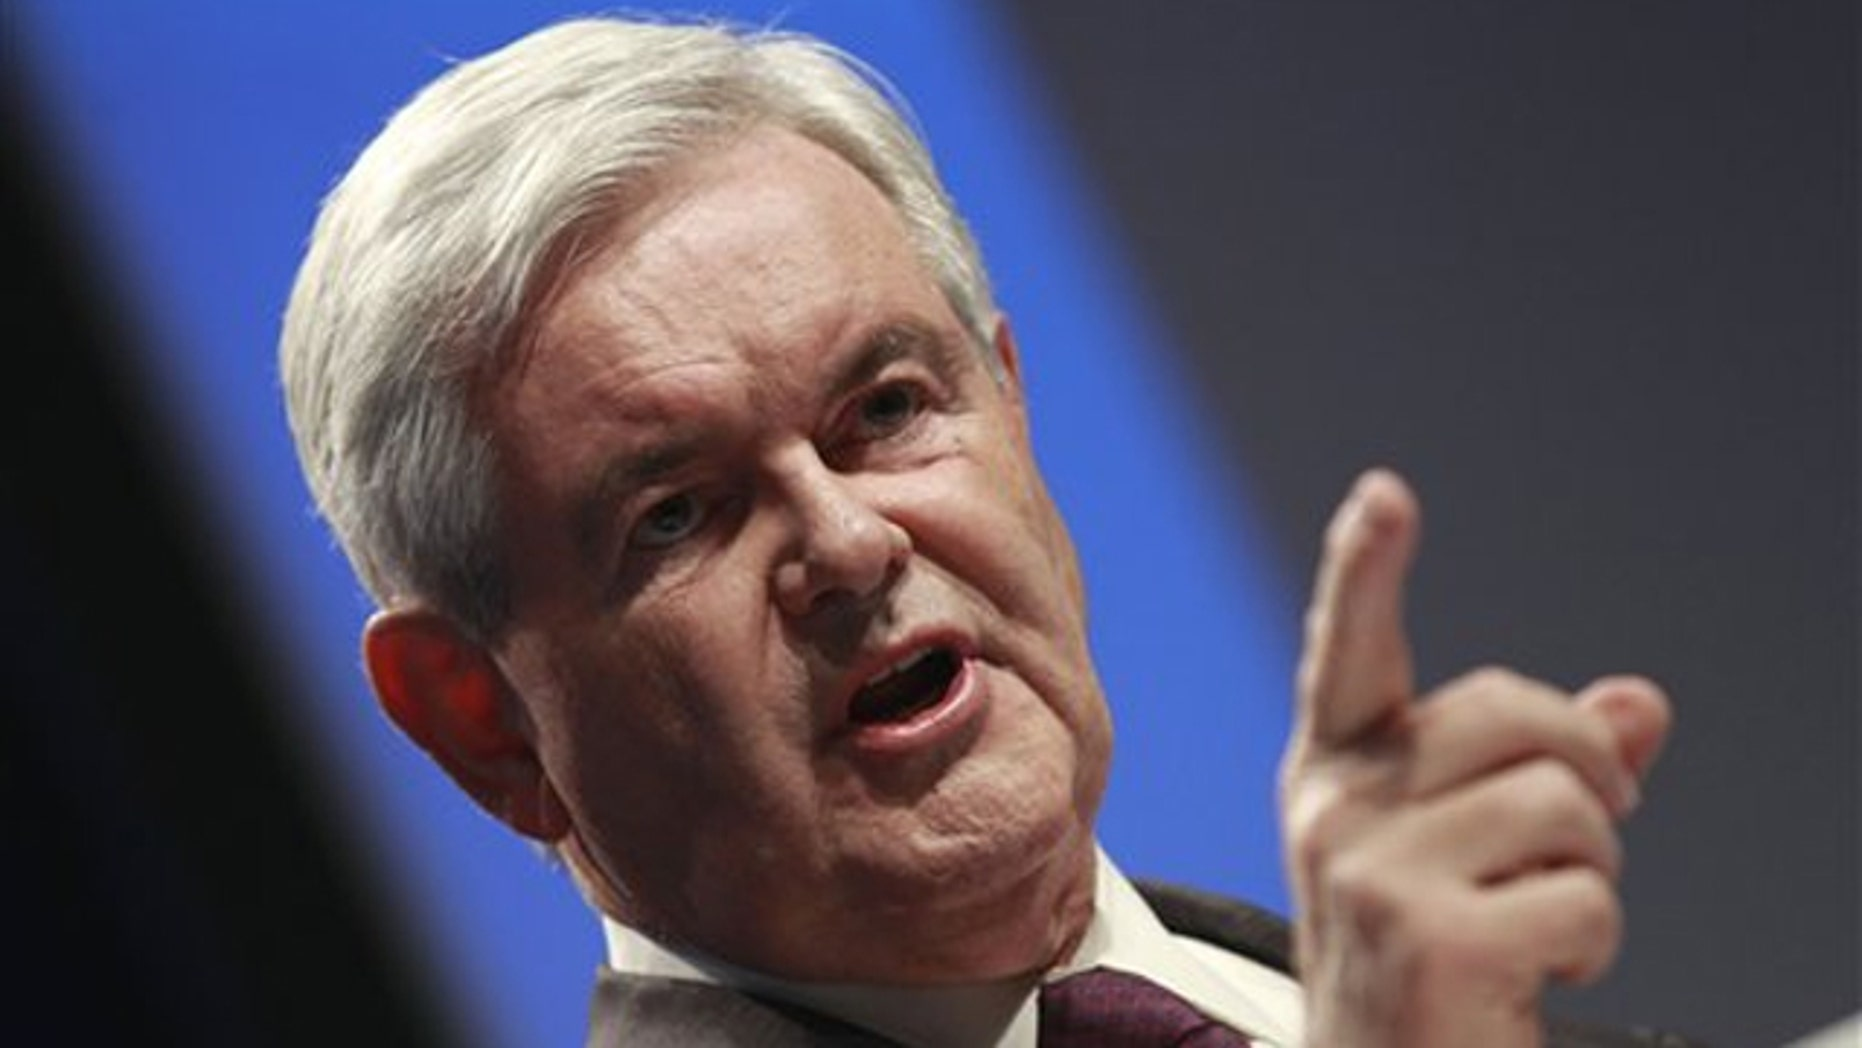 FILE: Former House Speaker Newt Gingrich addresses the Conservative Political Action Conference (CPAC) in Washington Feb. 10.